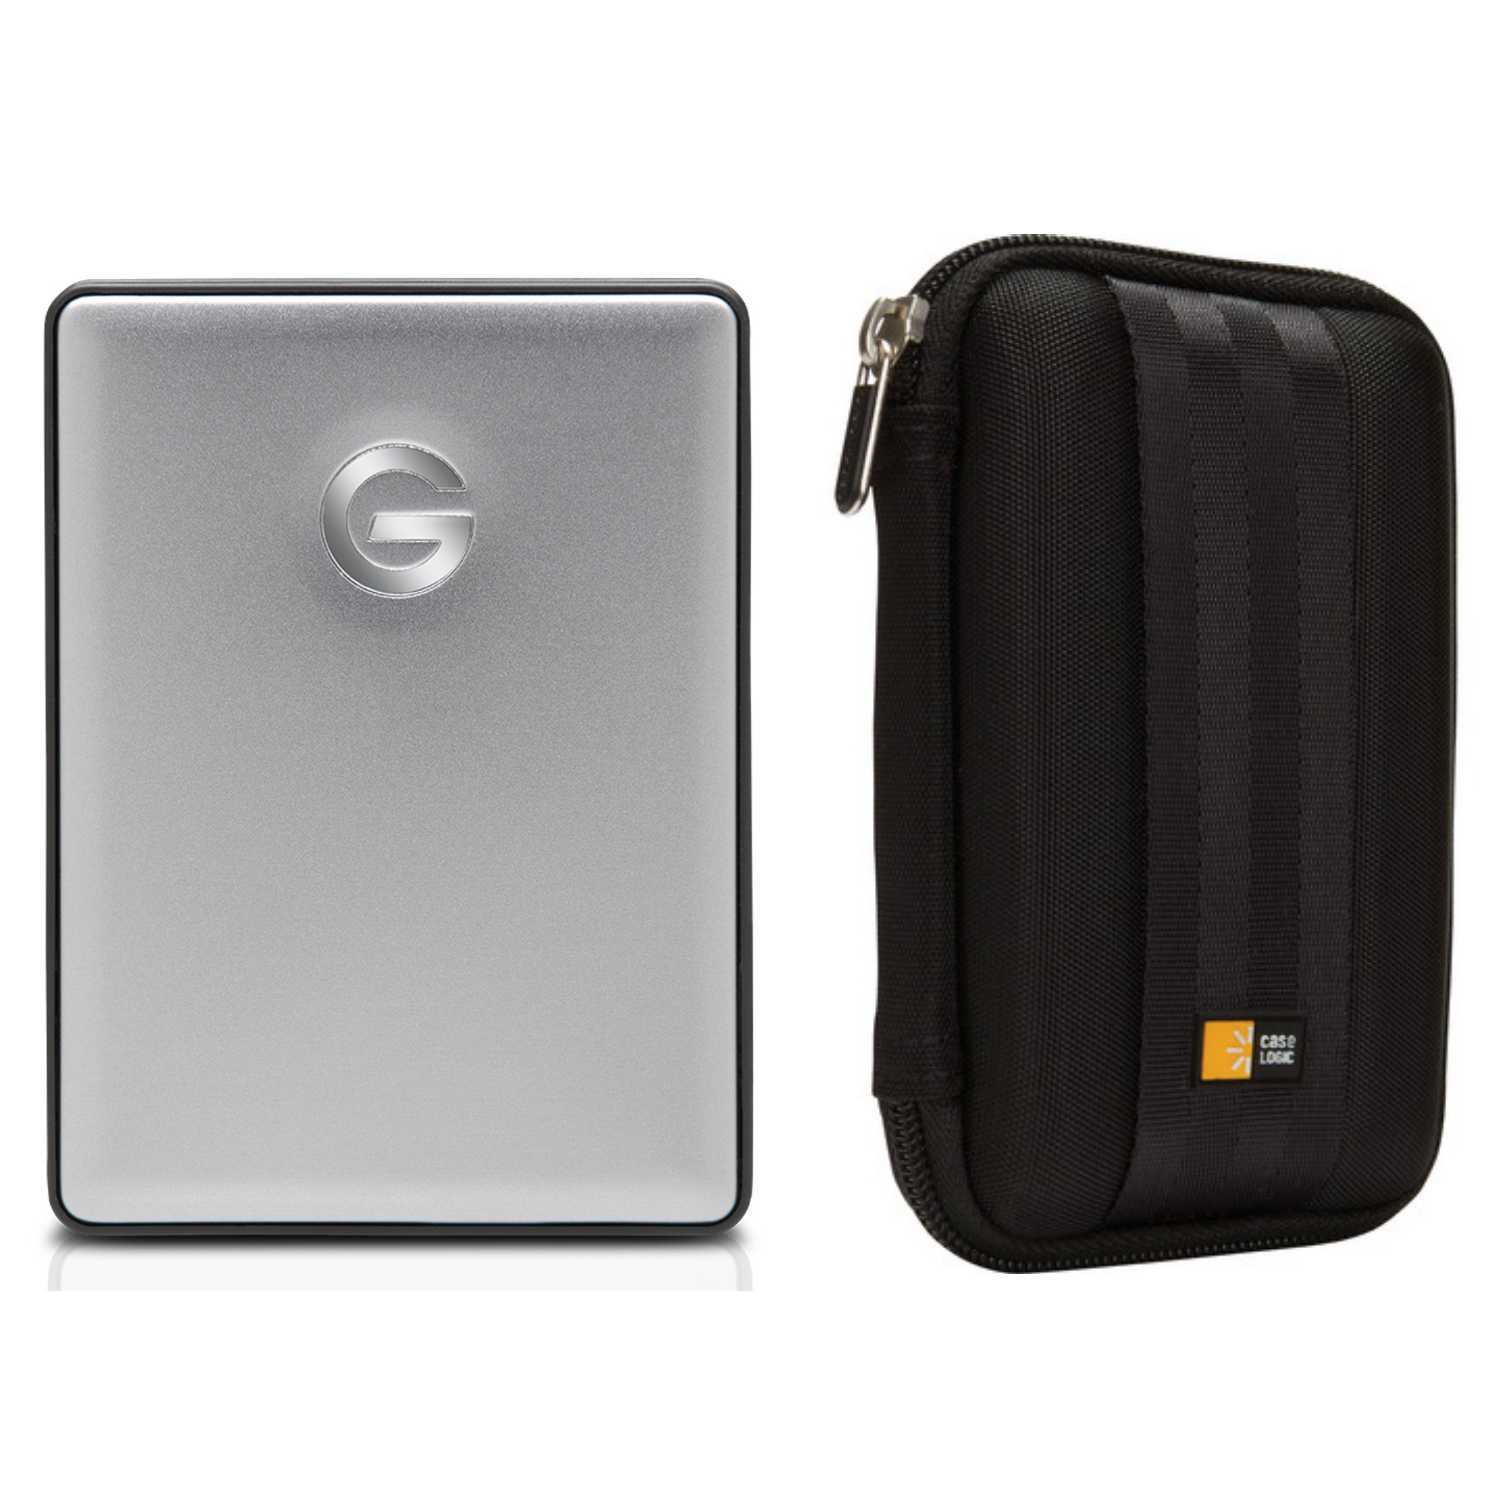 G-Technology G-DRIVE mobile USB-C 1TB Hard Drive (Gray) with Case Bundle